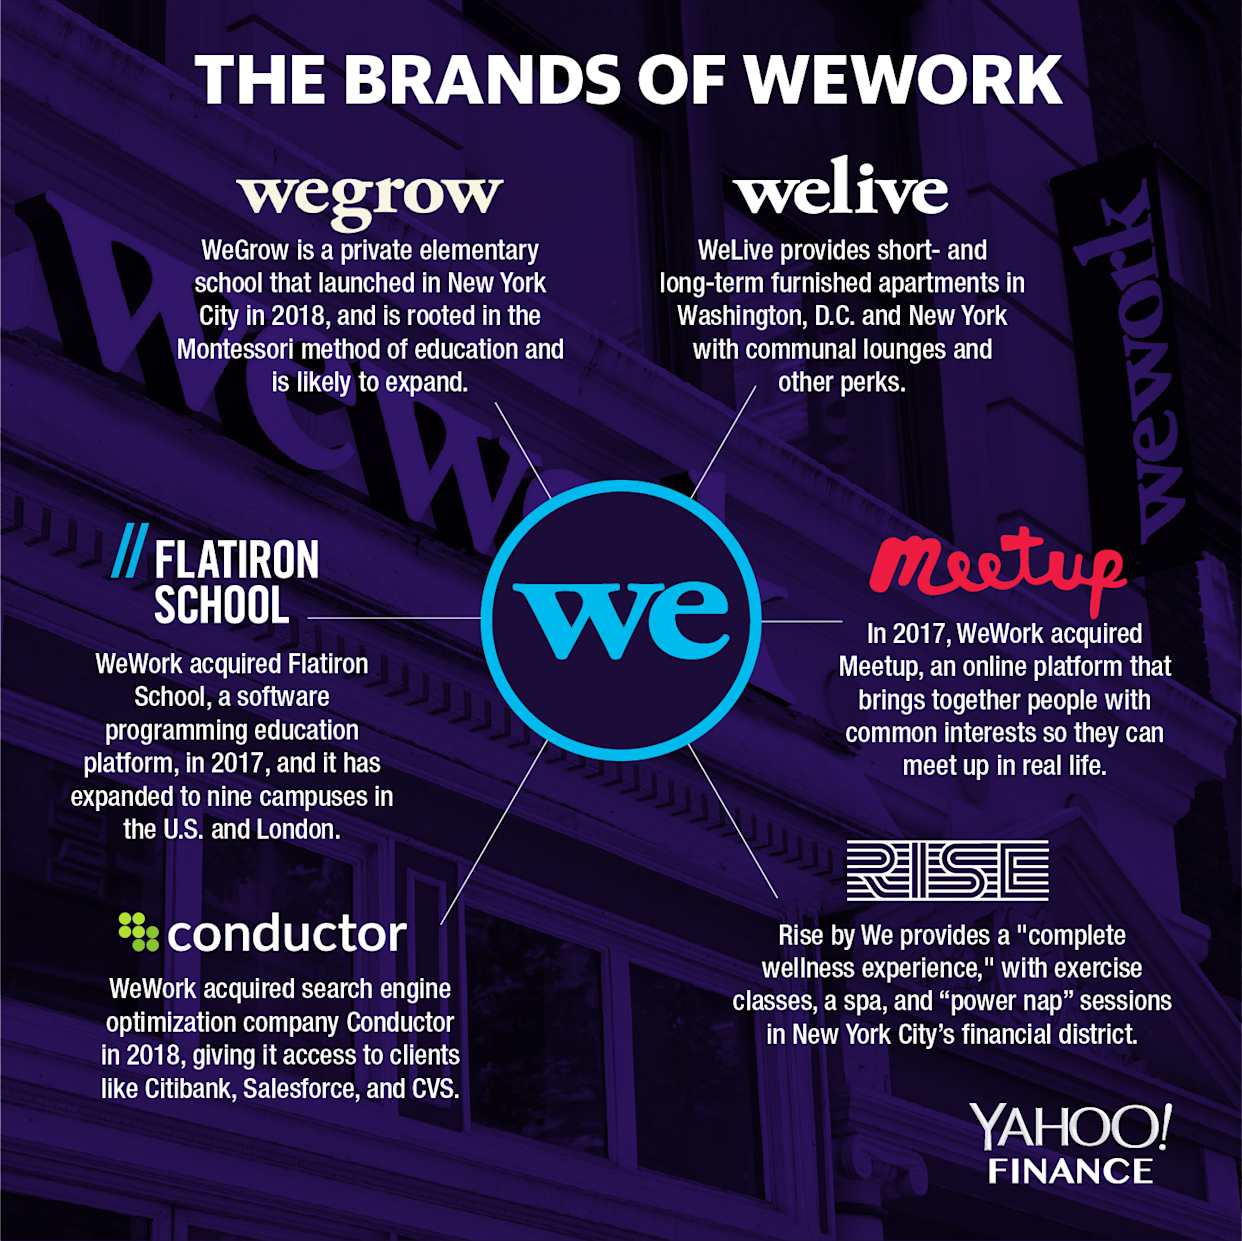 The brands of WeWork